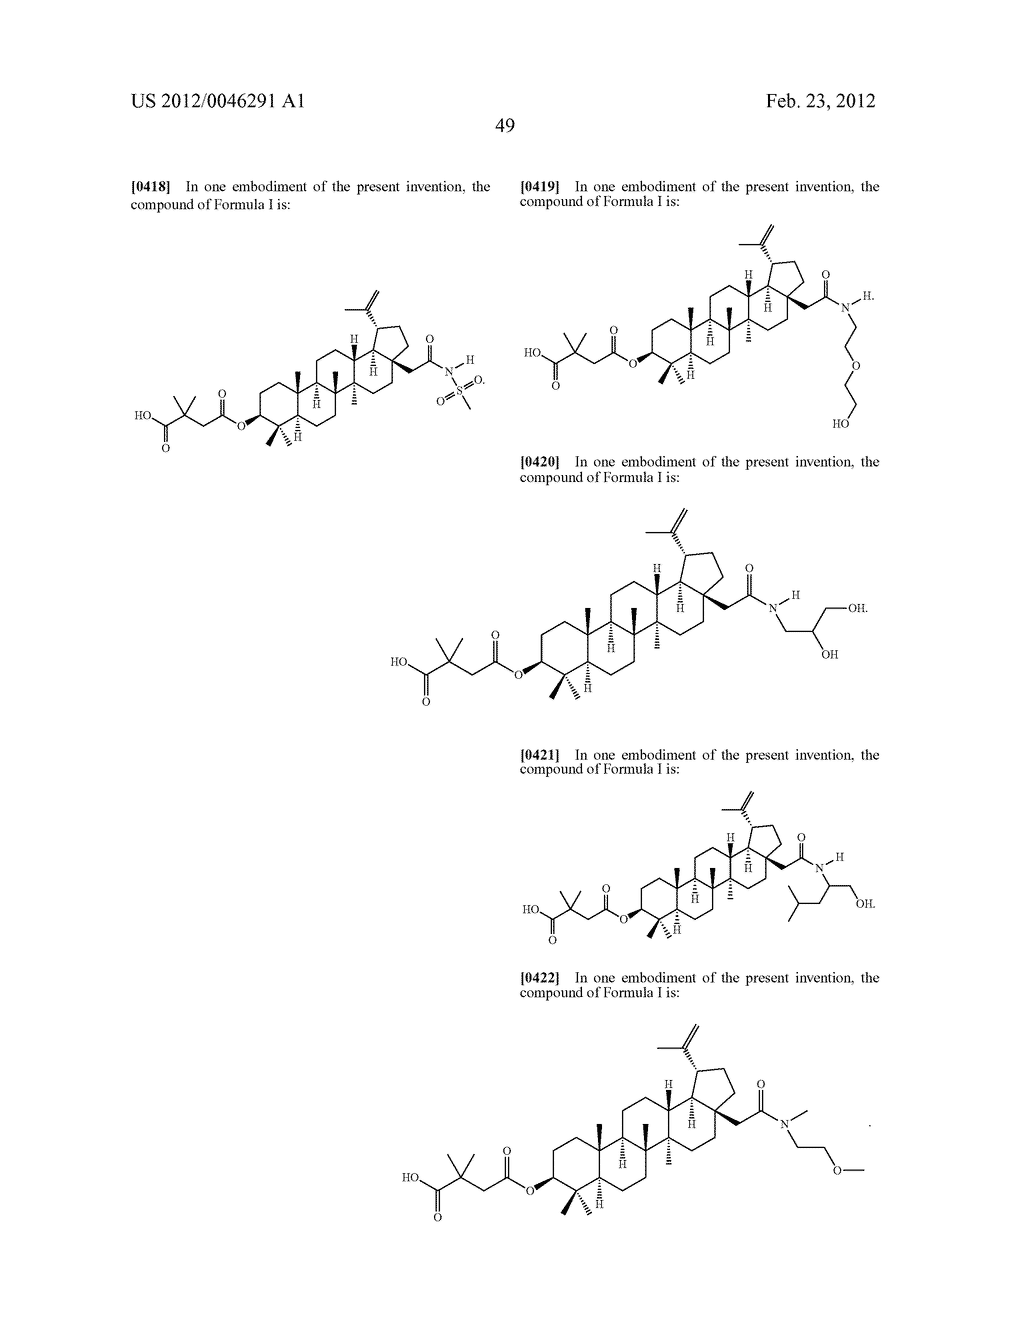 Extended Triterpene Derivatives - diagram, schematic, and image 51